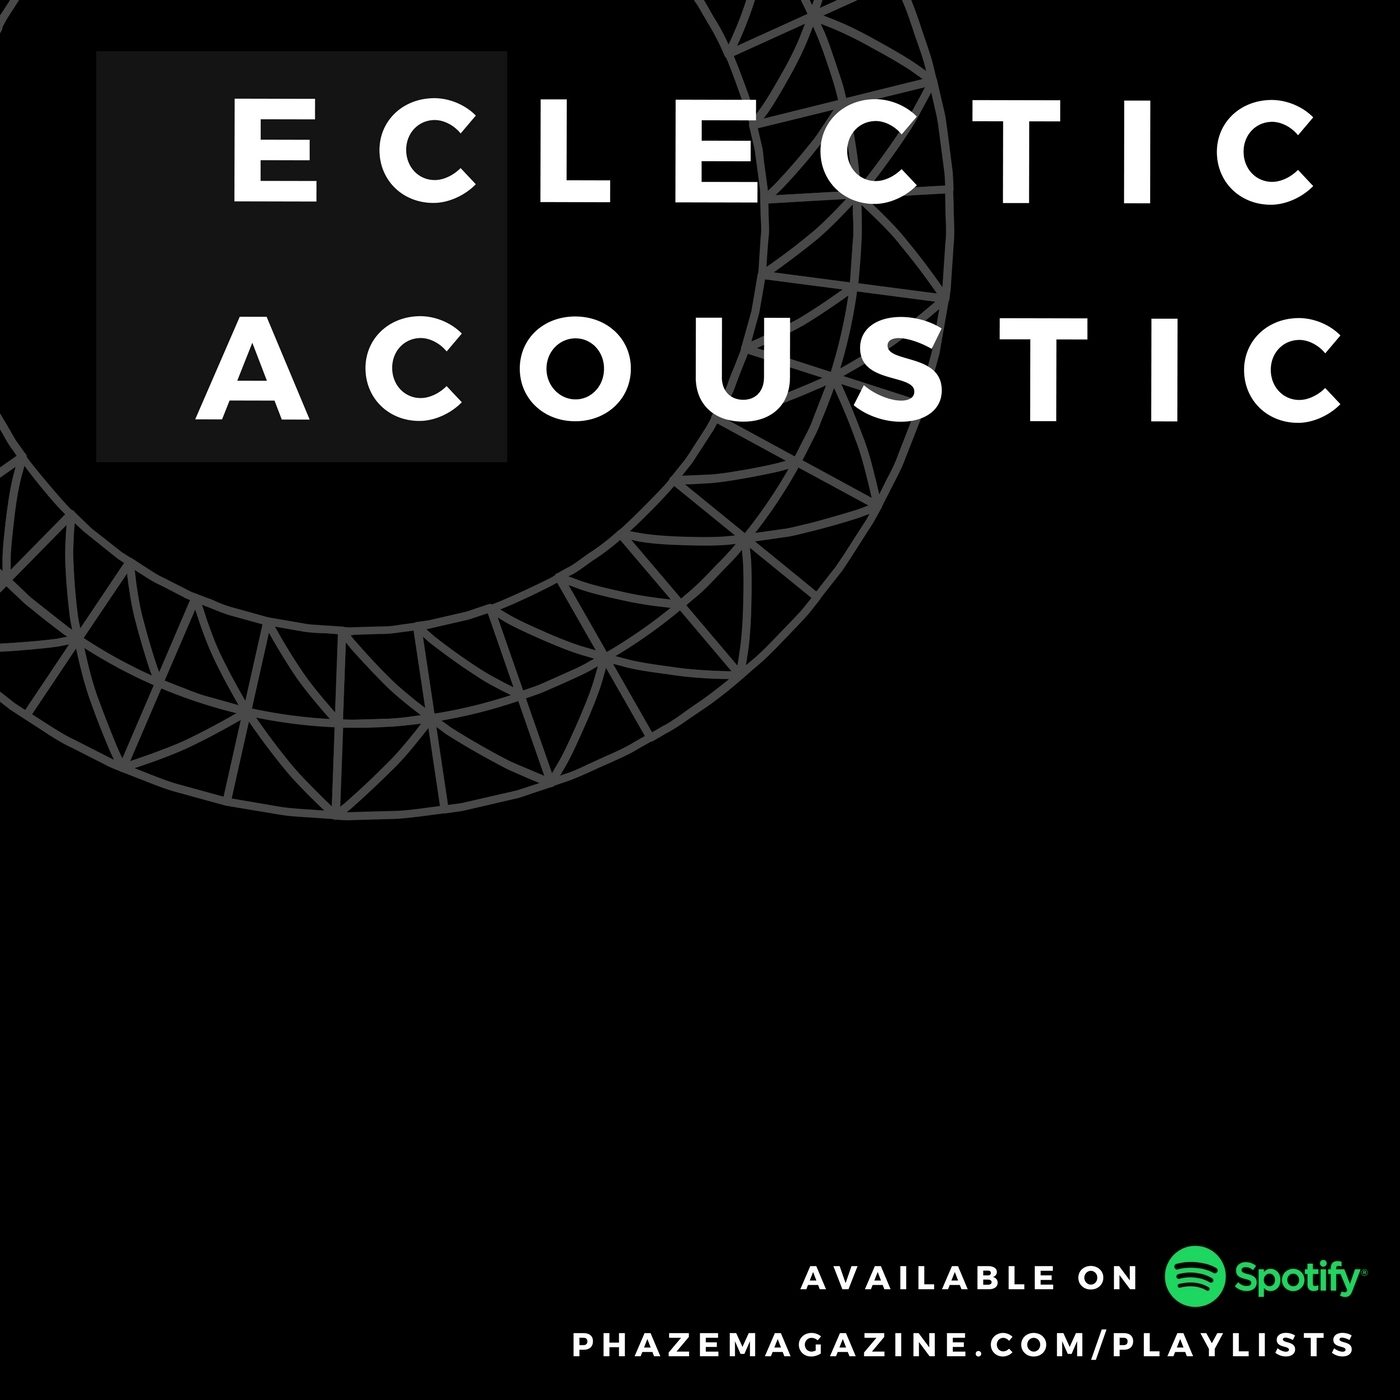 Eclectic Acoustic - Smooth acoustic arrangements featuring everything from RnB to rock to hip hop to pop. Curated by Jolene Carter.